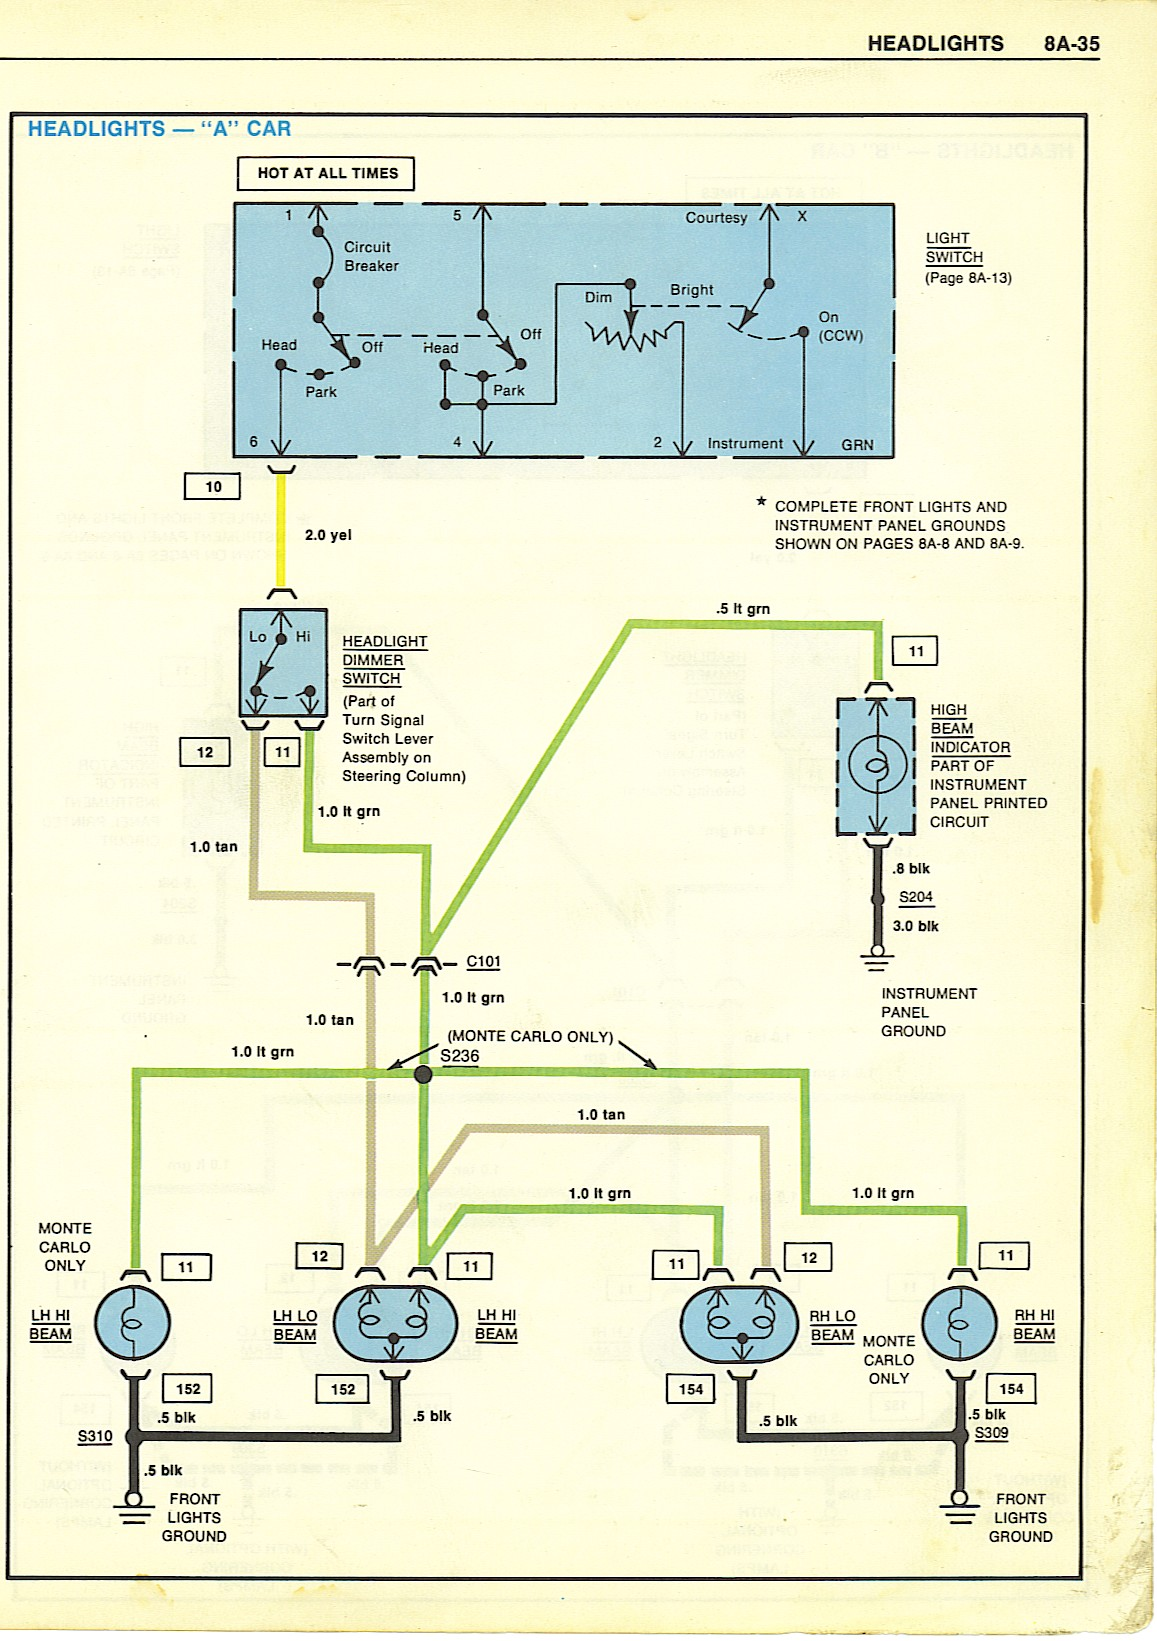 79 malibu tail light wiring diagram 79 malibu tail light wiring diagram wiring diagram  79 malibu tail light wiring diagram